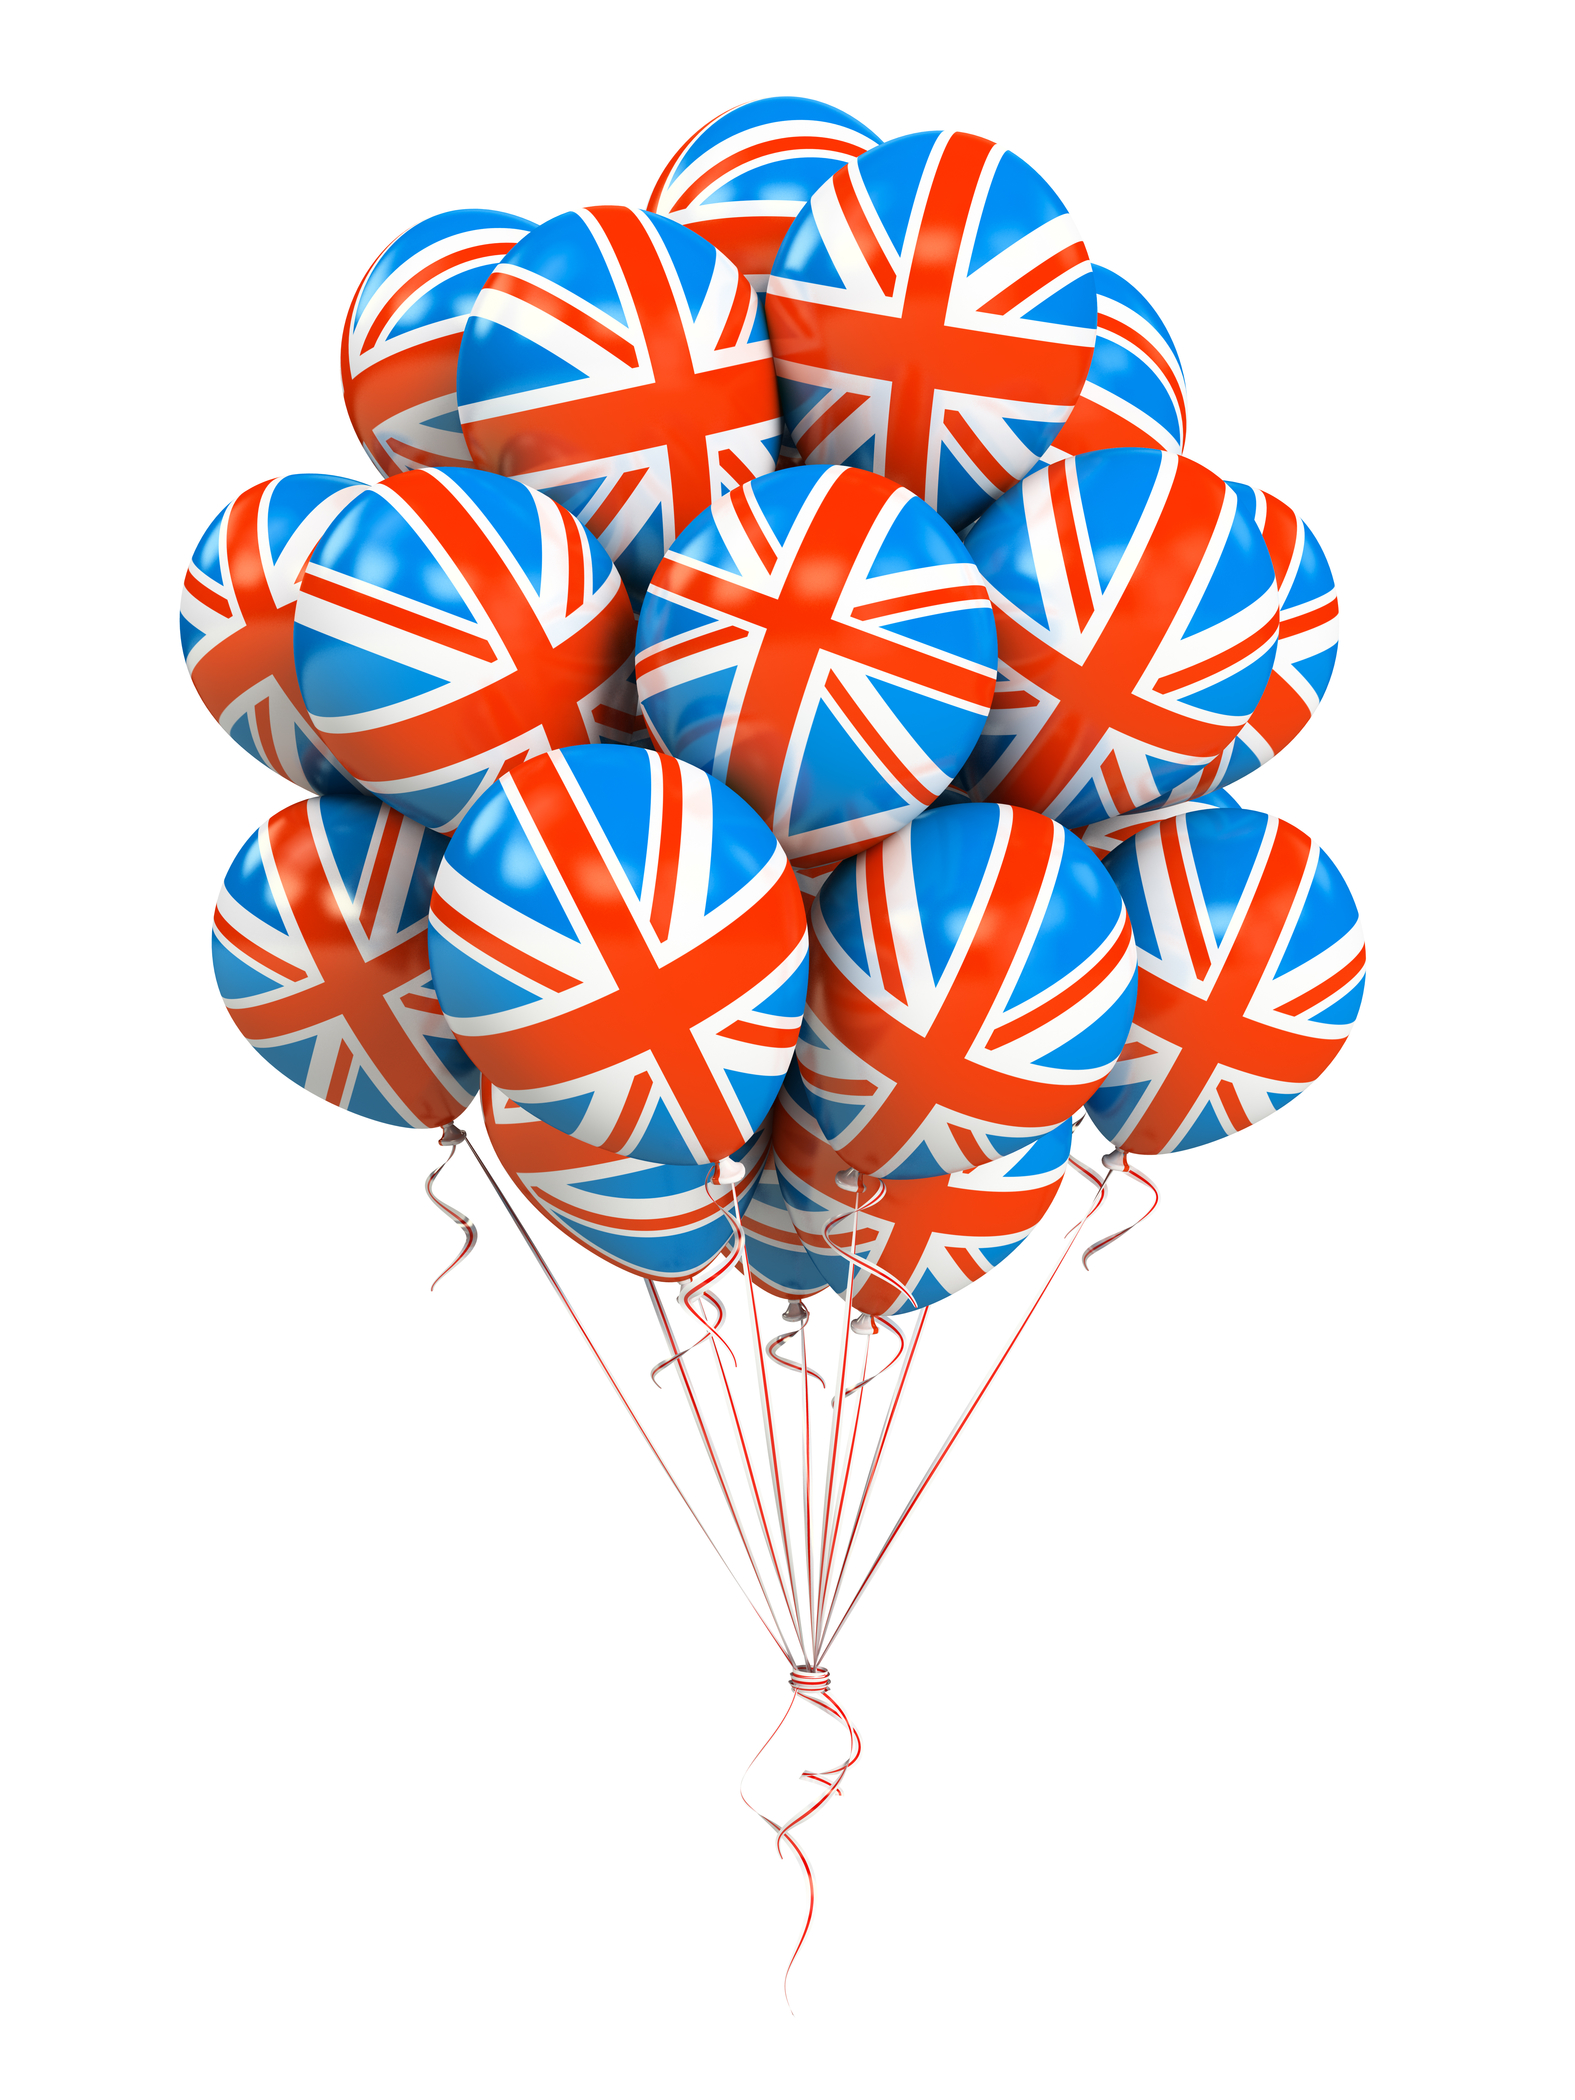 Bunch of Great Britan flag balloons isolated on white background